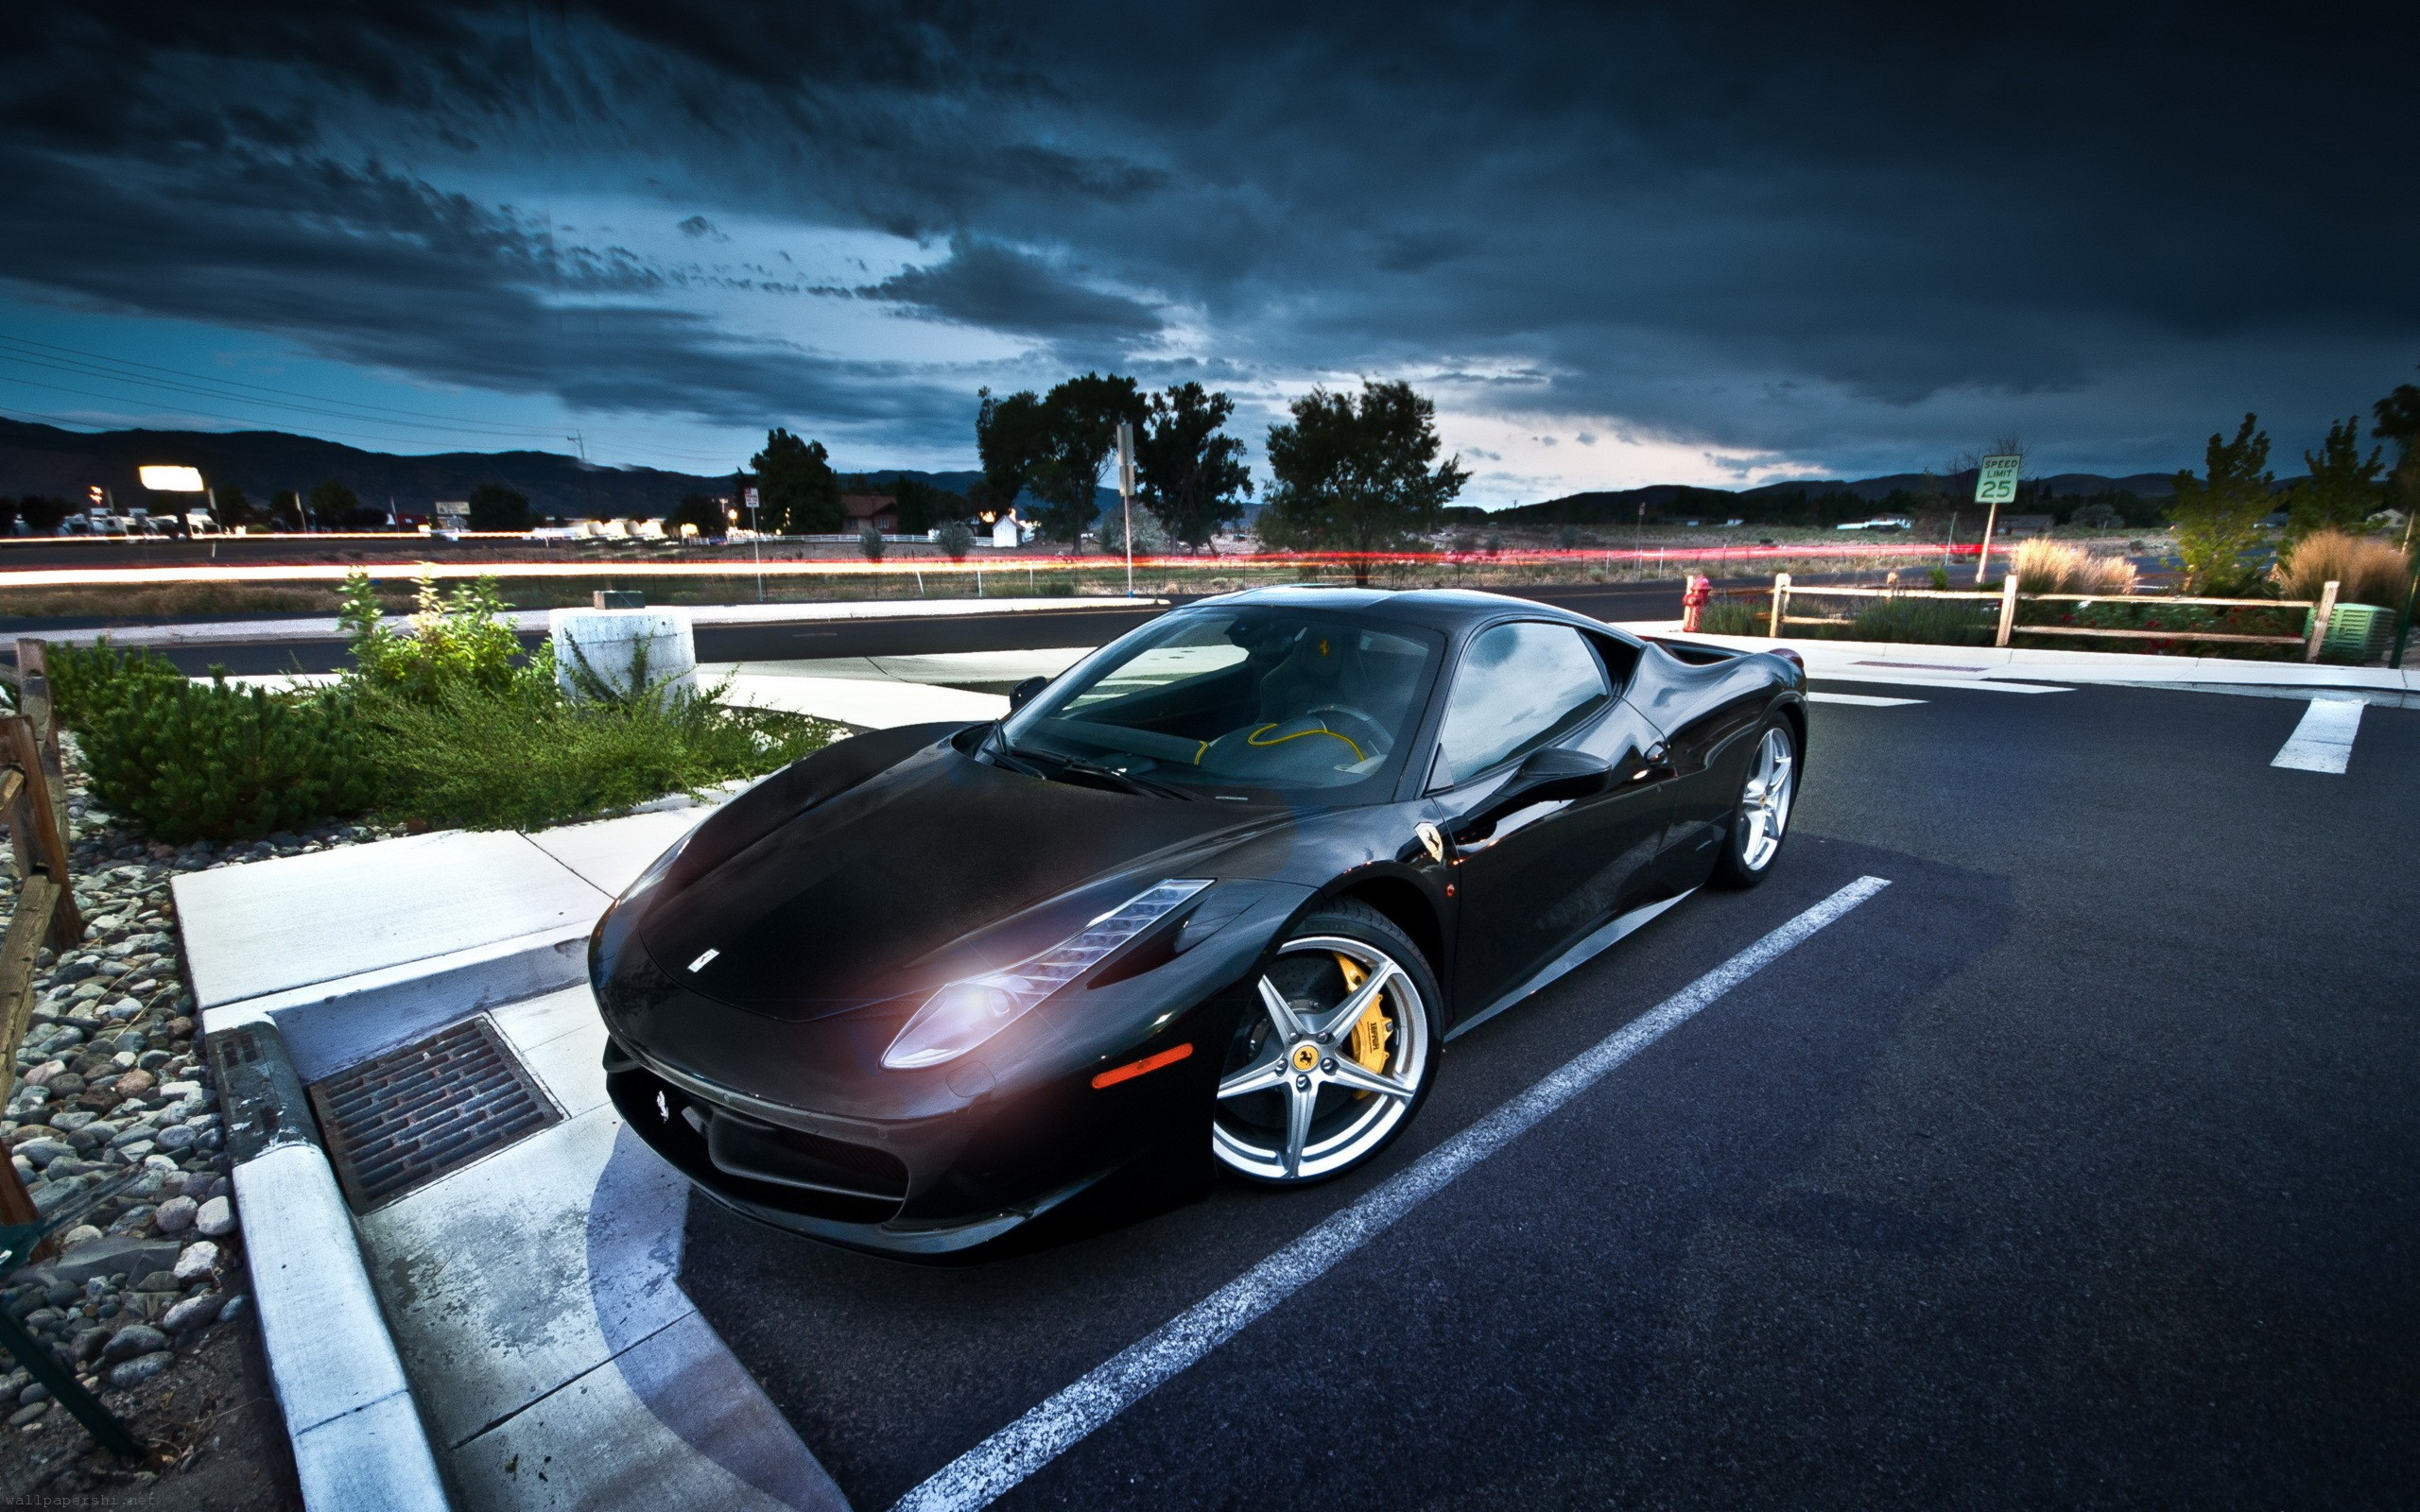 Simple Wallpaper Night Ferrari - ferrari_street_night-wide  You Should Have-898062.jpg